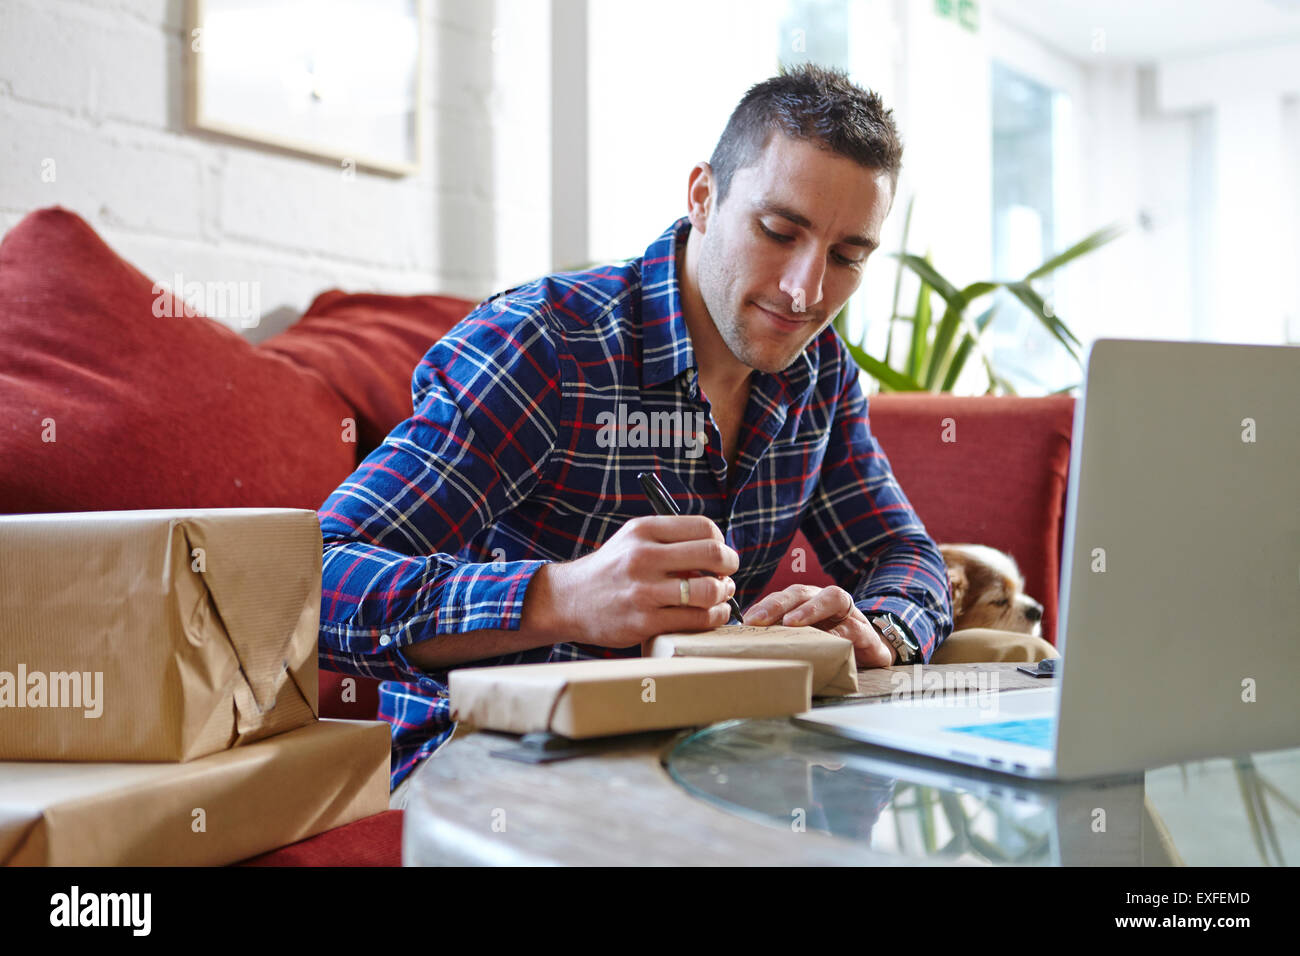 Mid adult man writing address on parcels in picture framers showroom - Stock Image